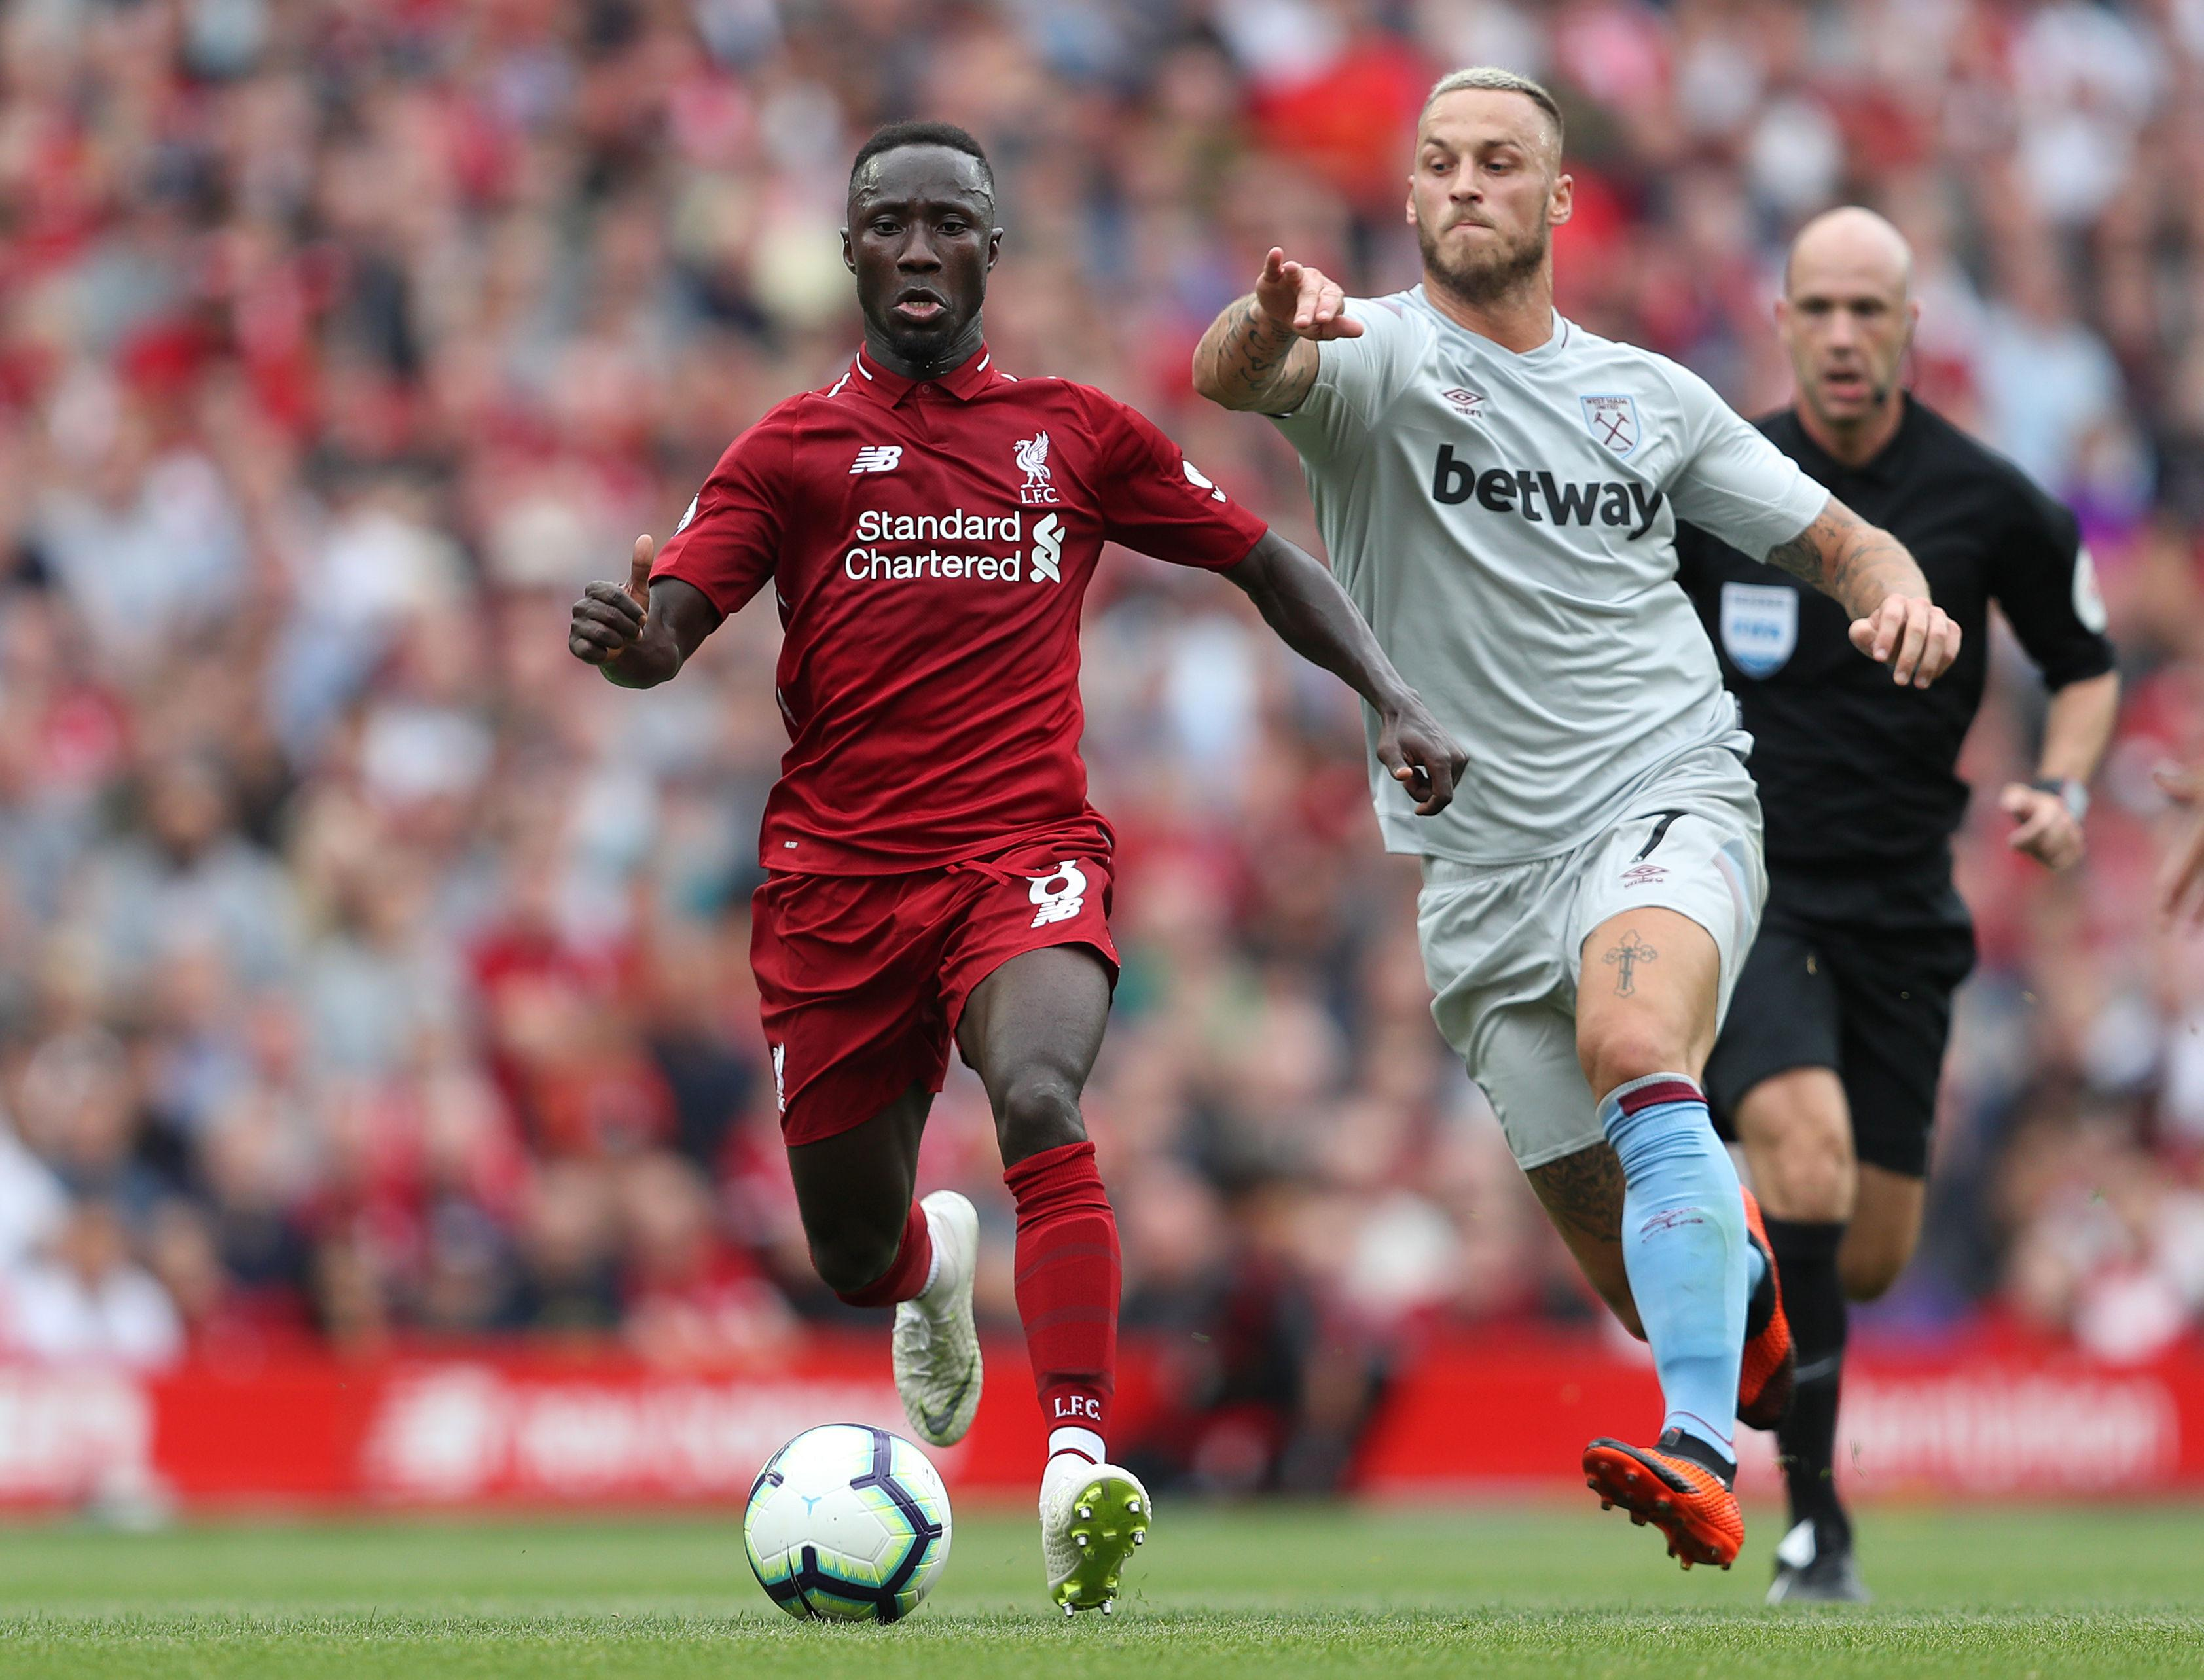 Naby Keita slipped seamlessly into Liverpool's team for his Premier League debut